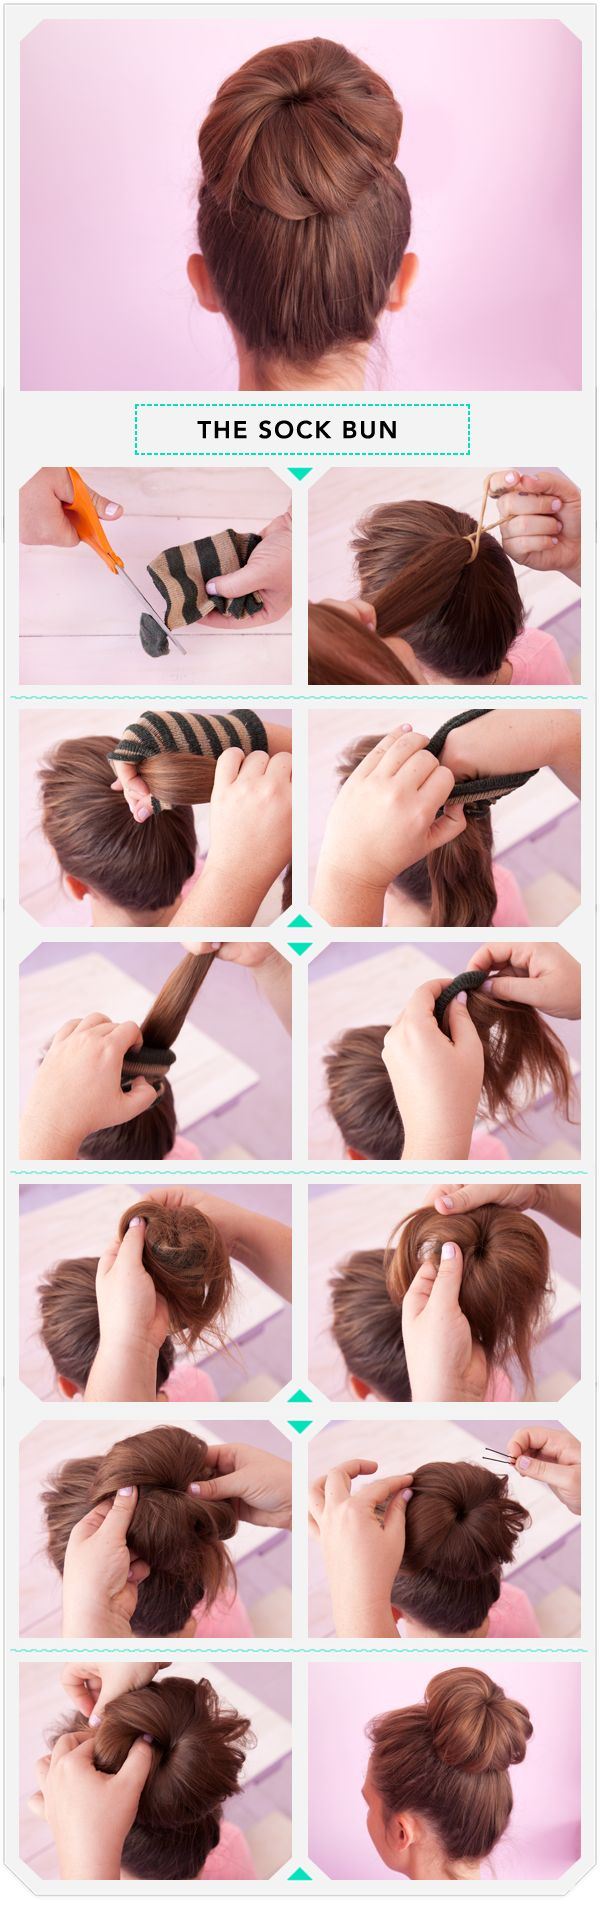 How To: The Sock Bun | BeautylishHairstyles, Sock Bun Tutorial, Makeup, Beautiful, Socks Buns Tutorials, Hair Style, Bun Tutorials, Sock Buns, Perfect Buns